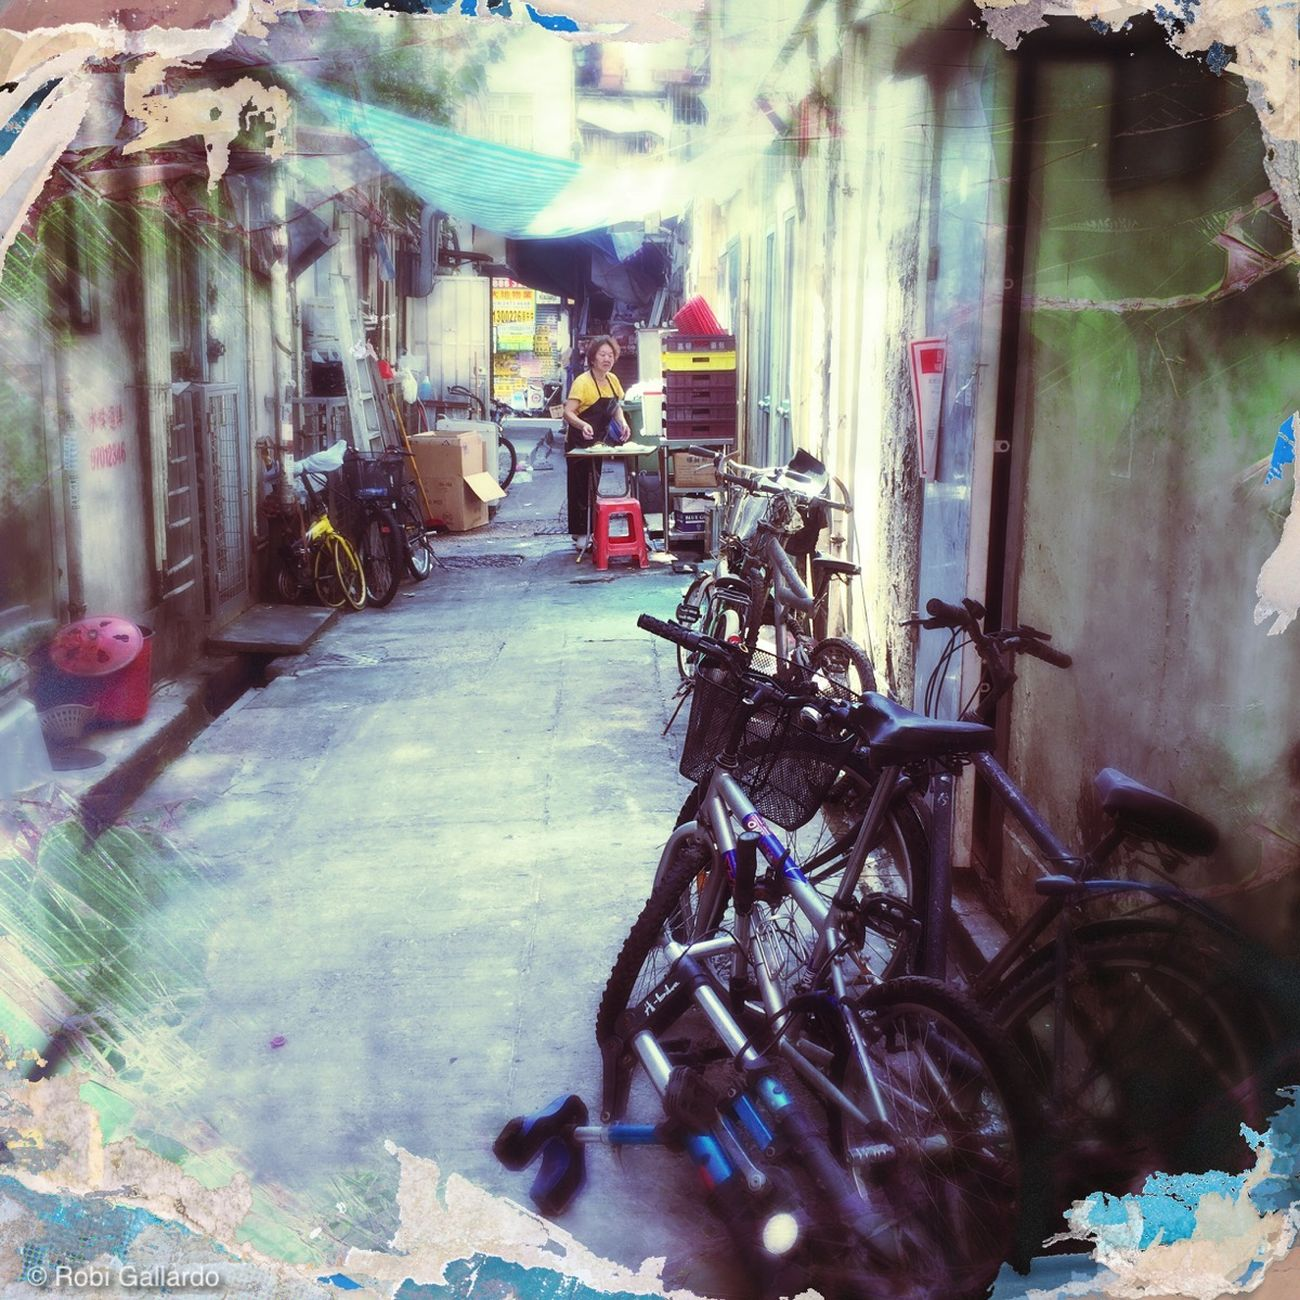 Back alley of Long Ping, Yuen Long Backstreets & Alleyways Bicycle Day Hipstamatic HongKong Outdoors Street Photography Streetphotography